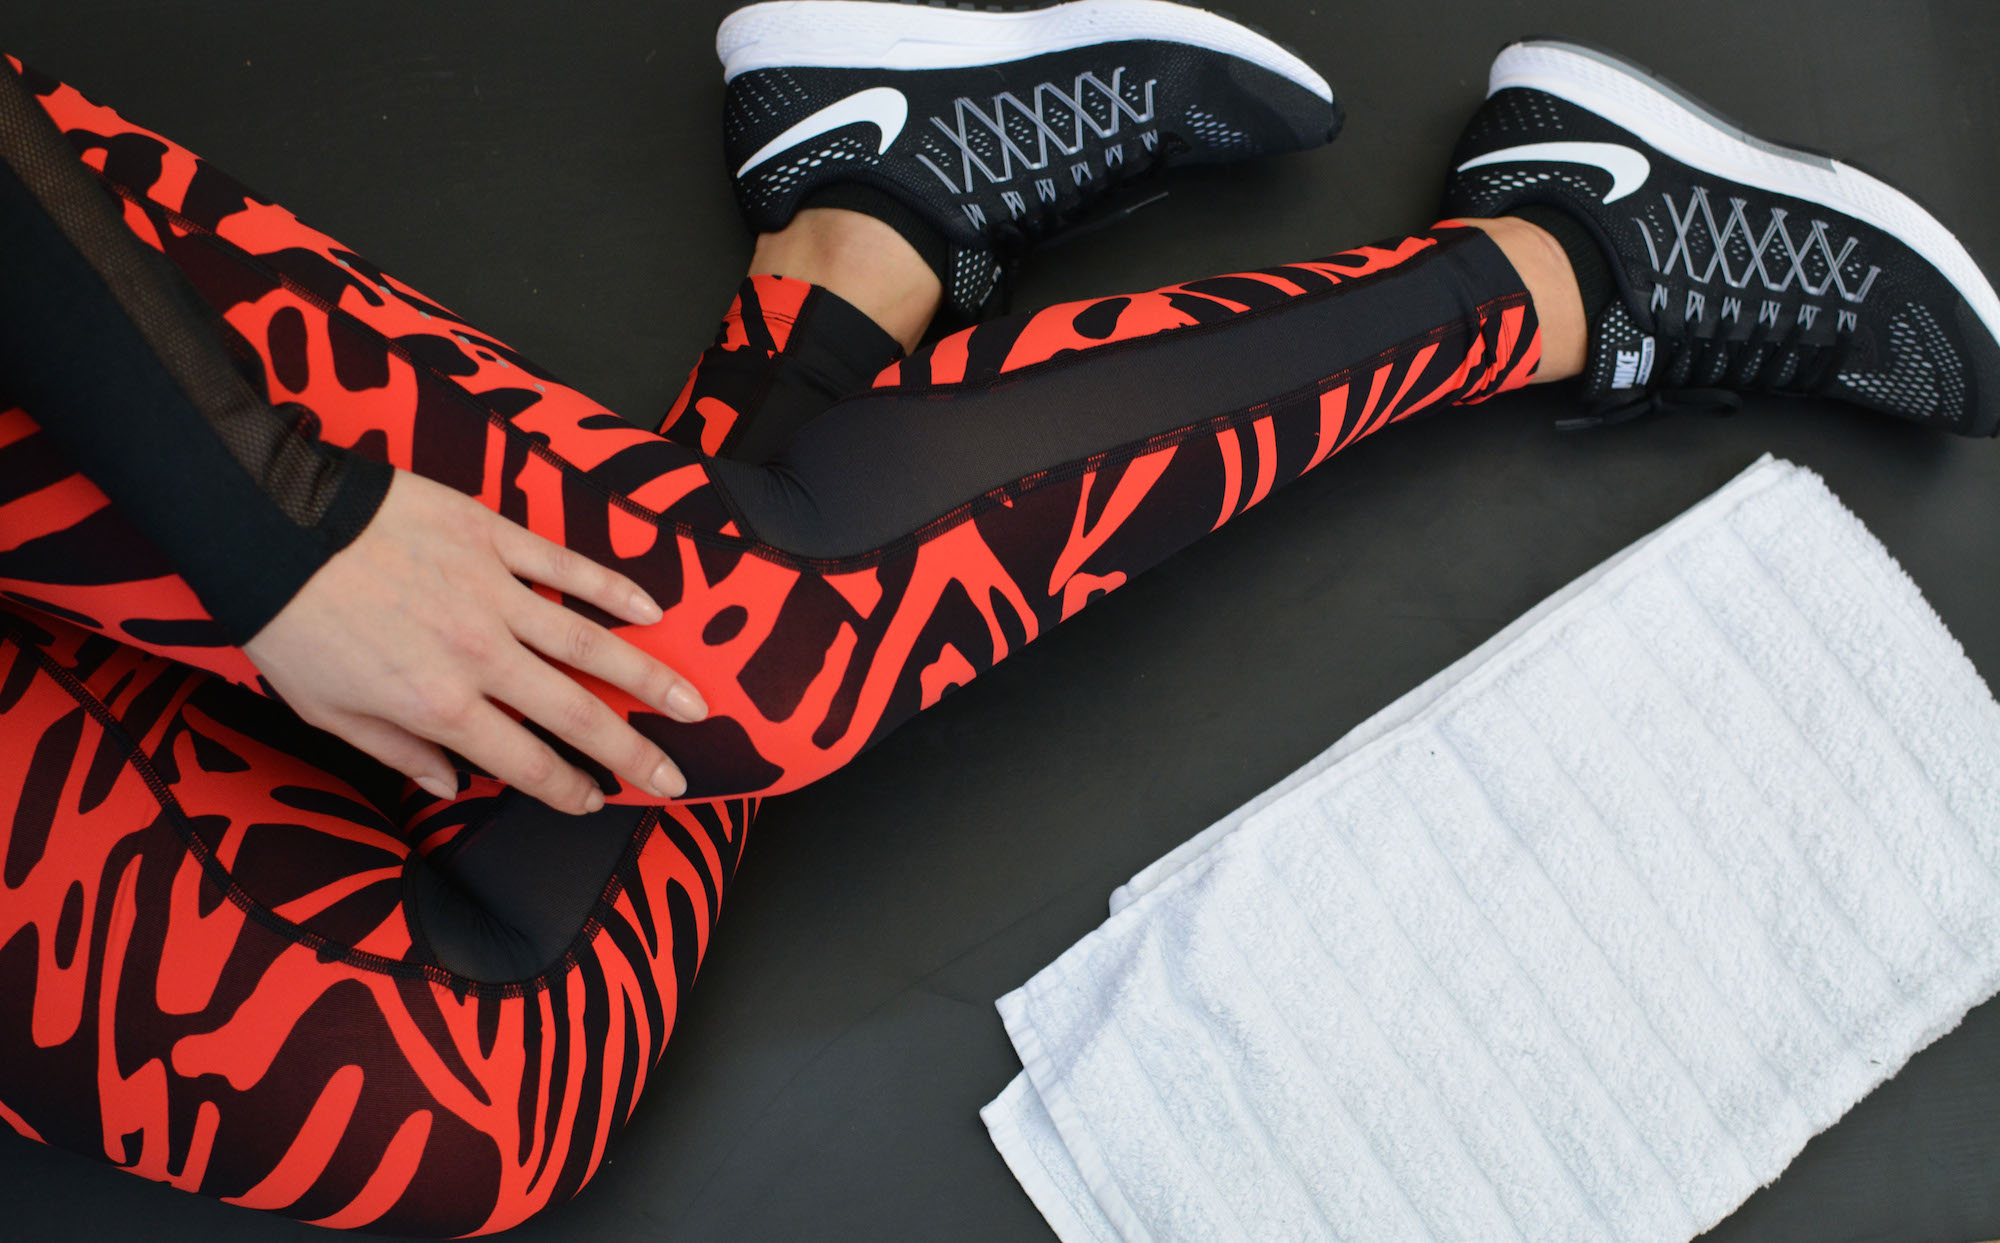 Gym Gear For The New Year